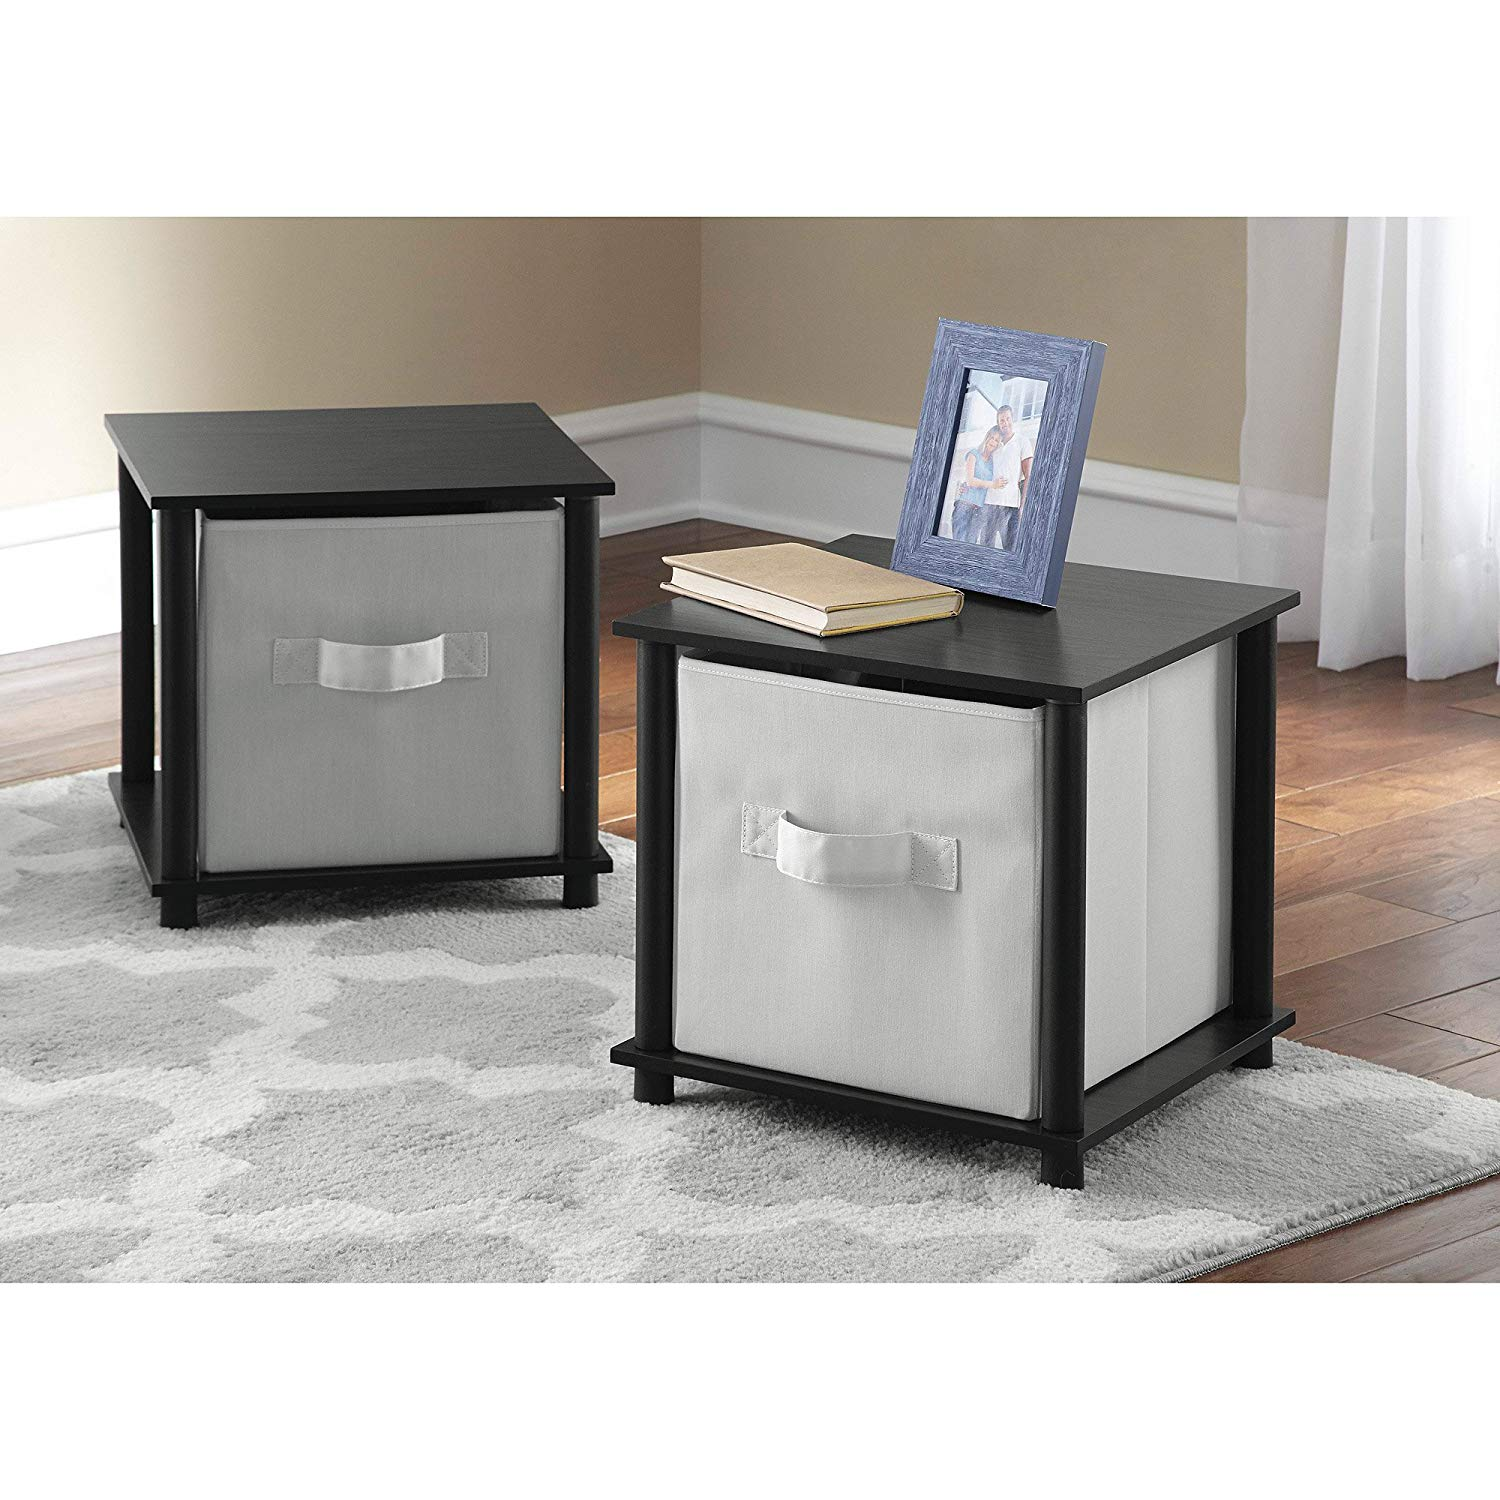 black oak mainstays tools single cube storage shelf end table finish side tables set kitchen dining inch patio low grey coffee wood top silver drum and sets small glass occasional